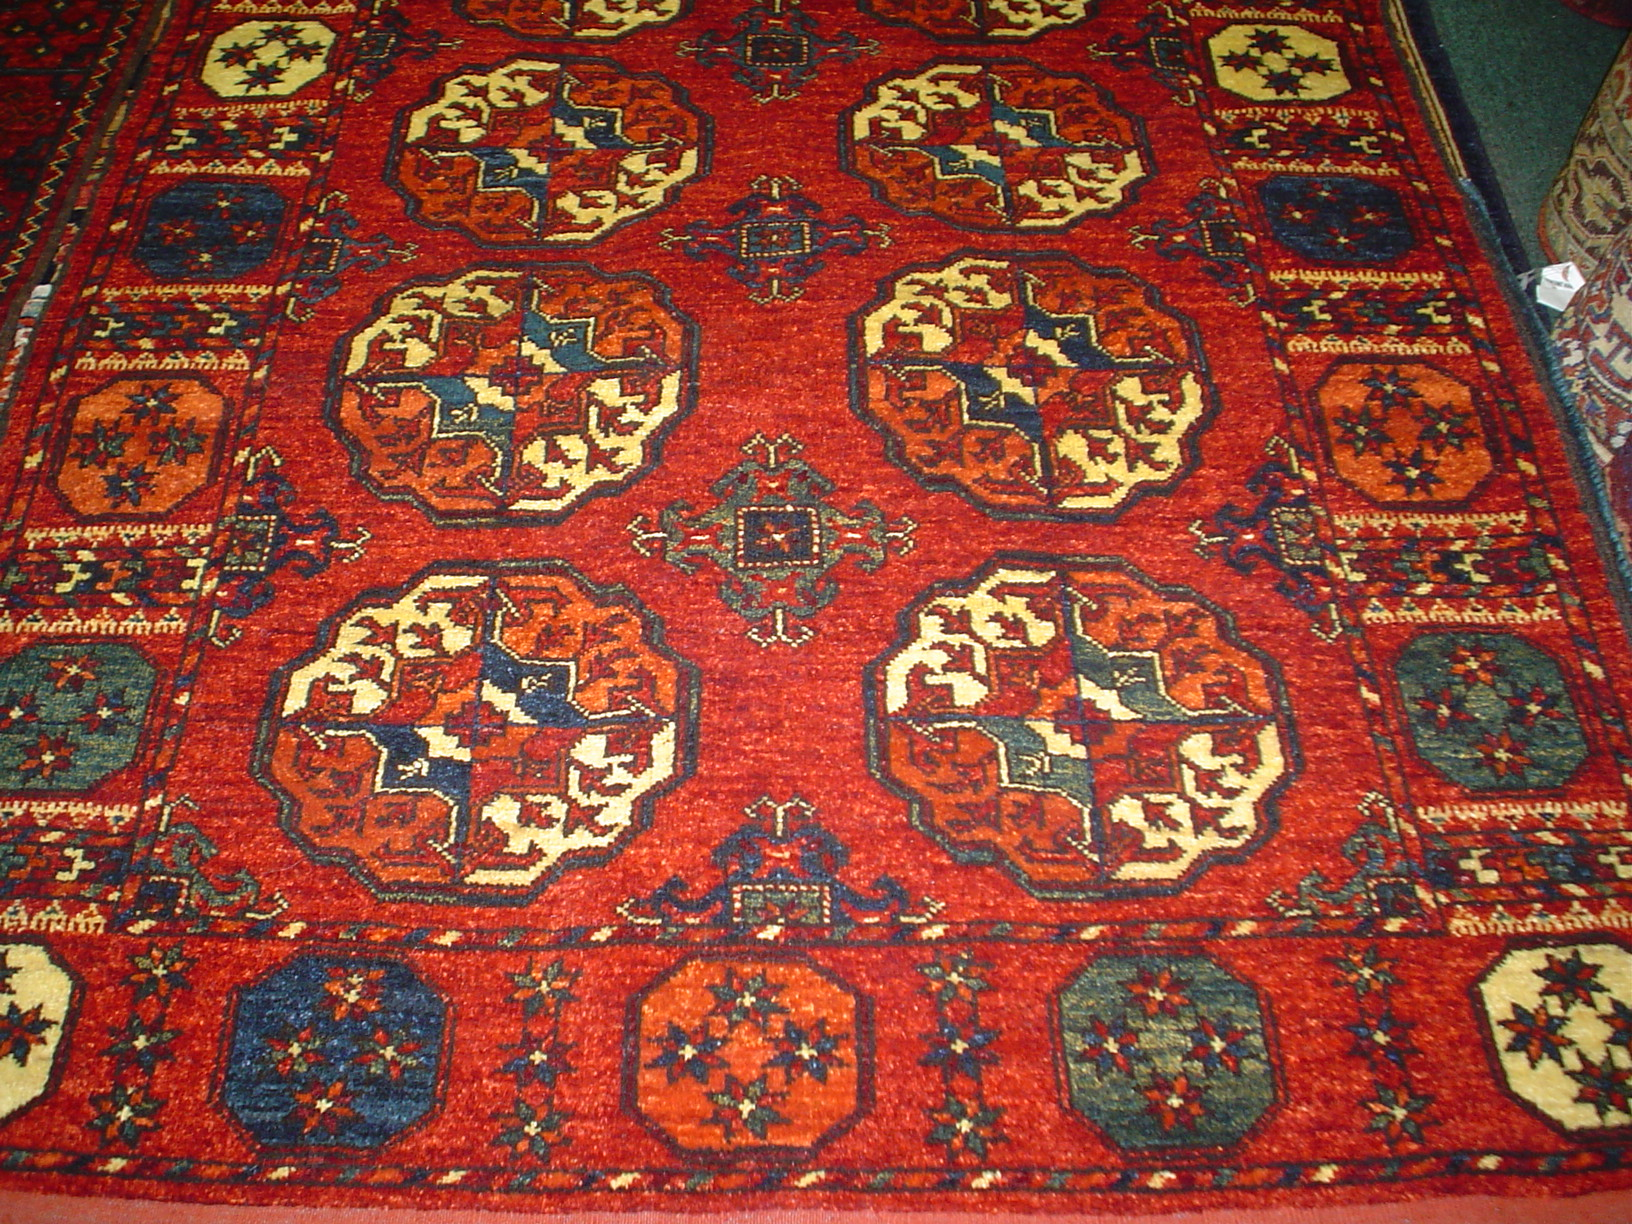 #6) 4 x 6 Turkoman rug. New rug in a traditional Turkoman design.